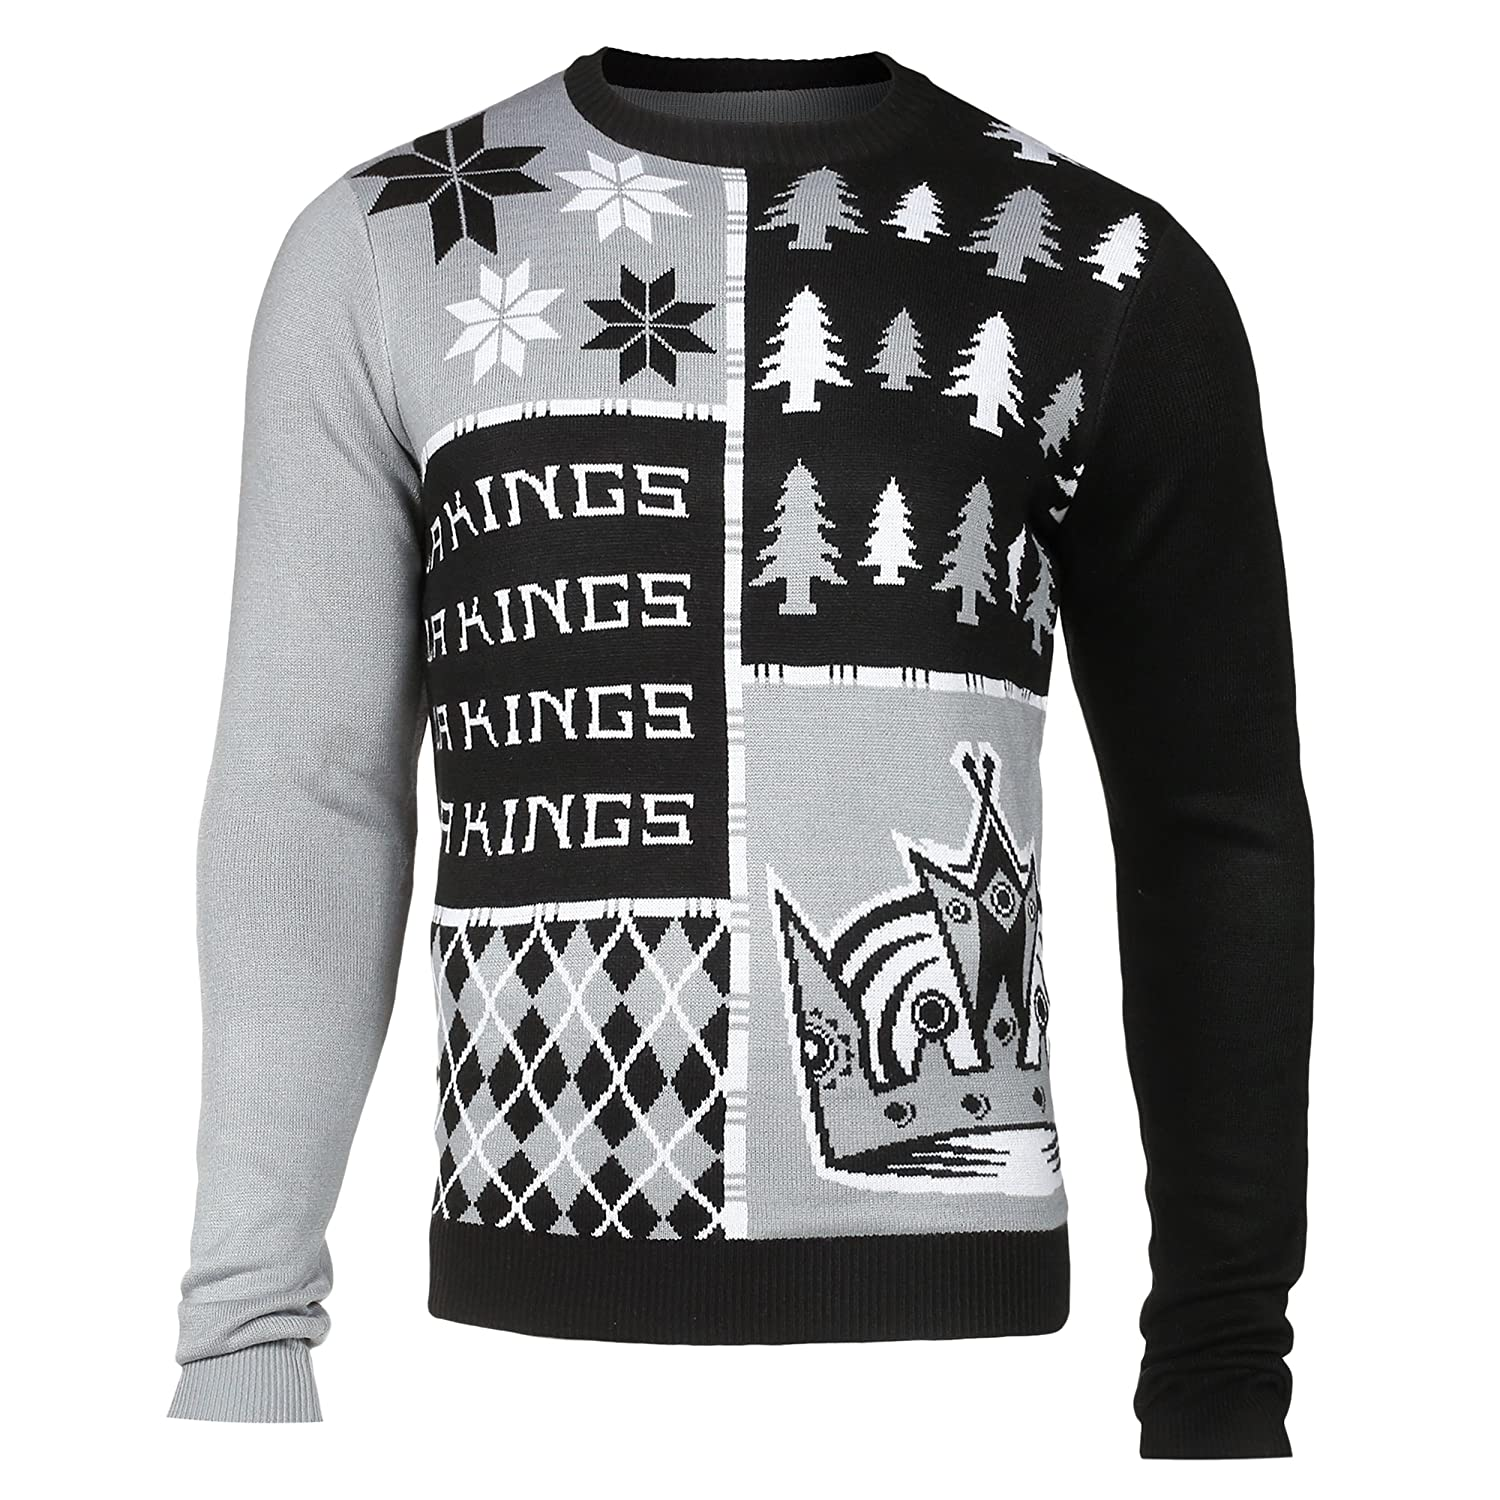 Amazon.com : NHL Busy Block Sweater : Sports & Outdoors